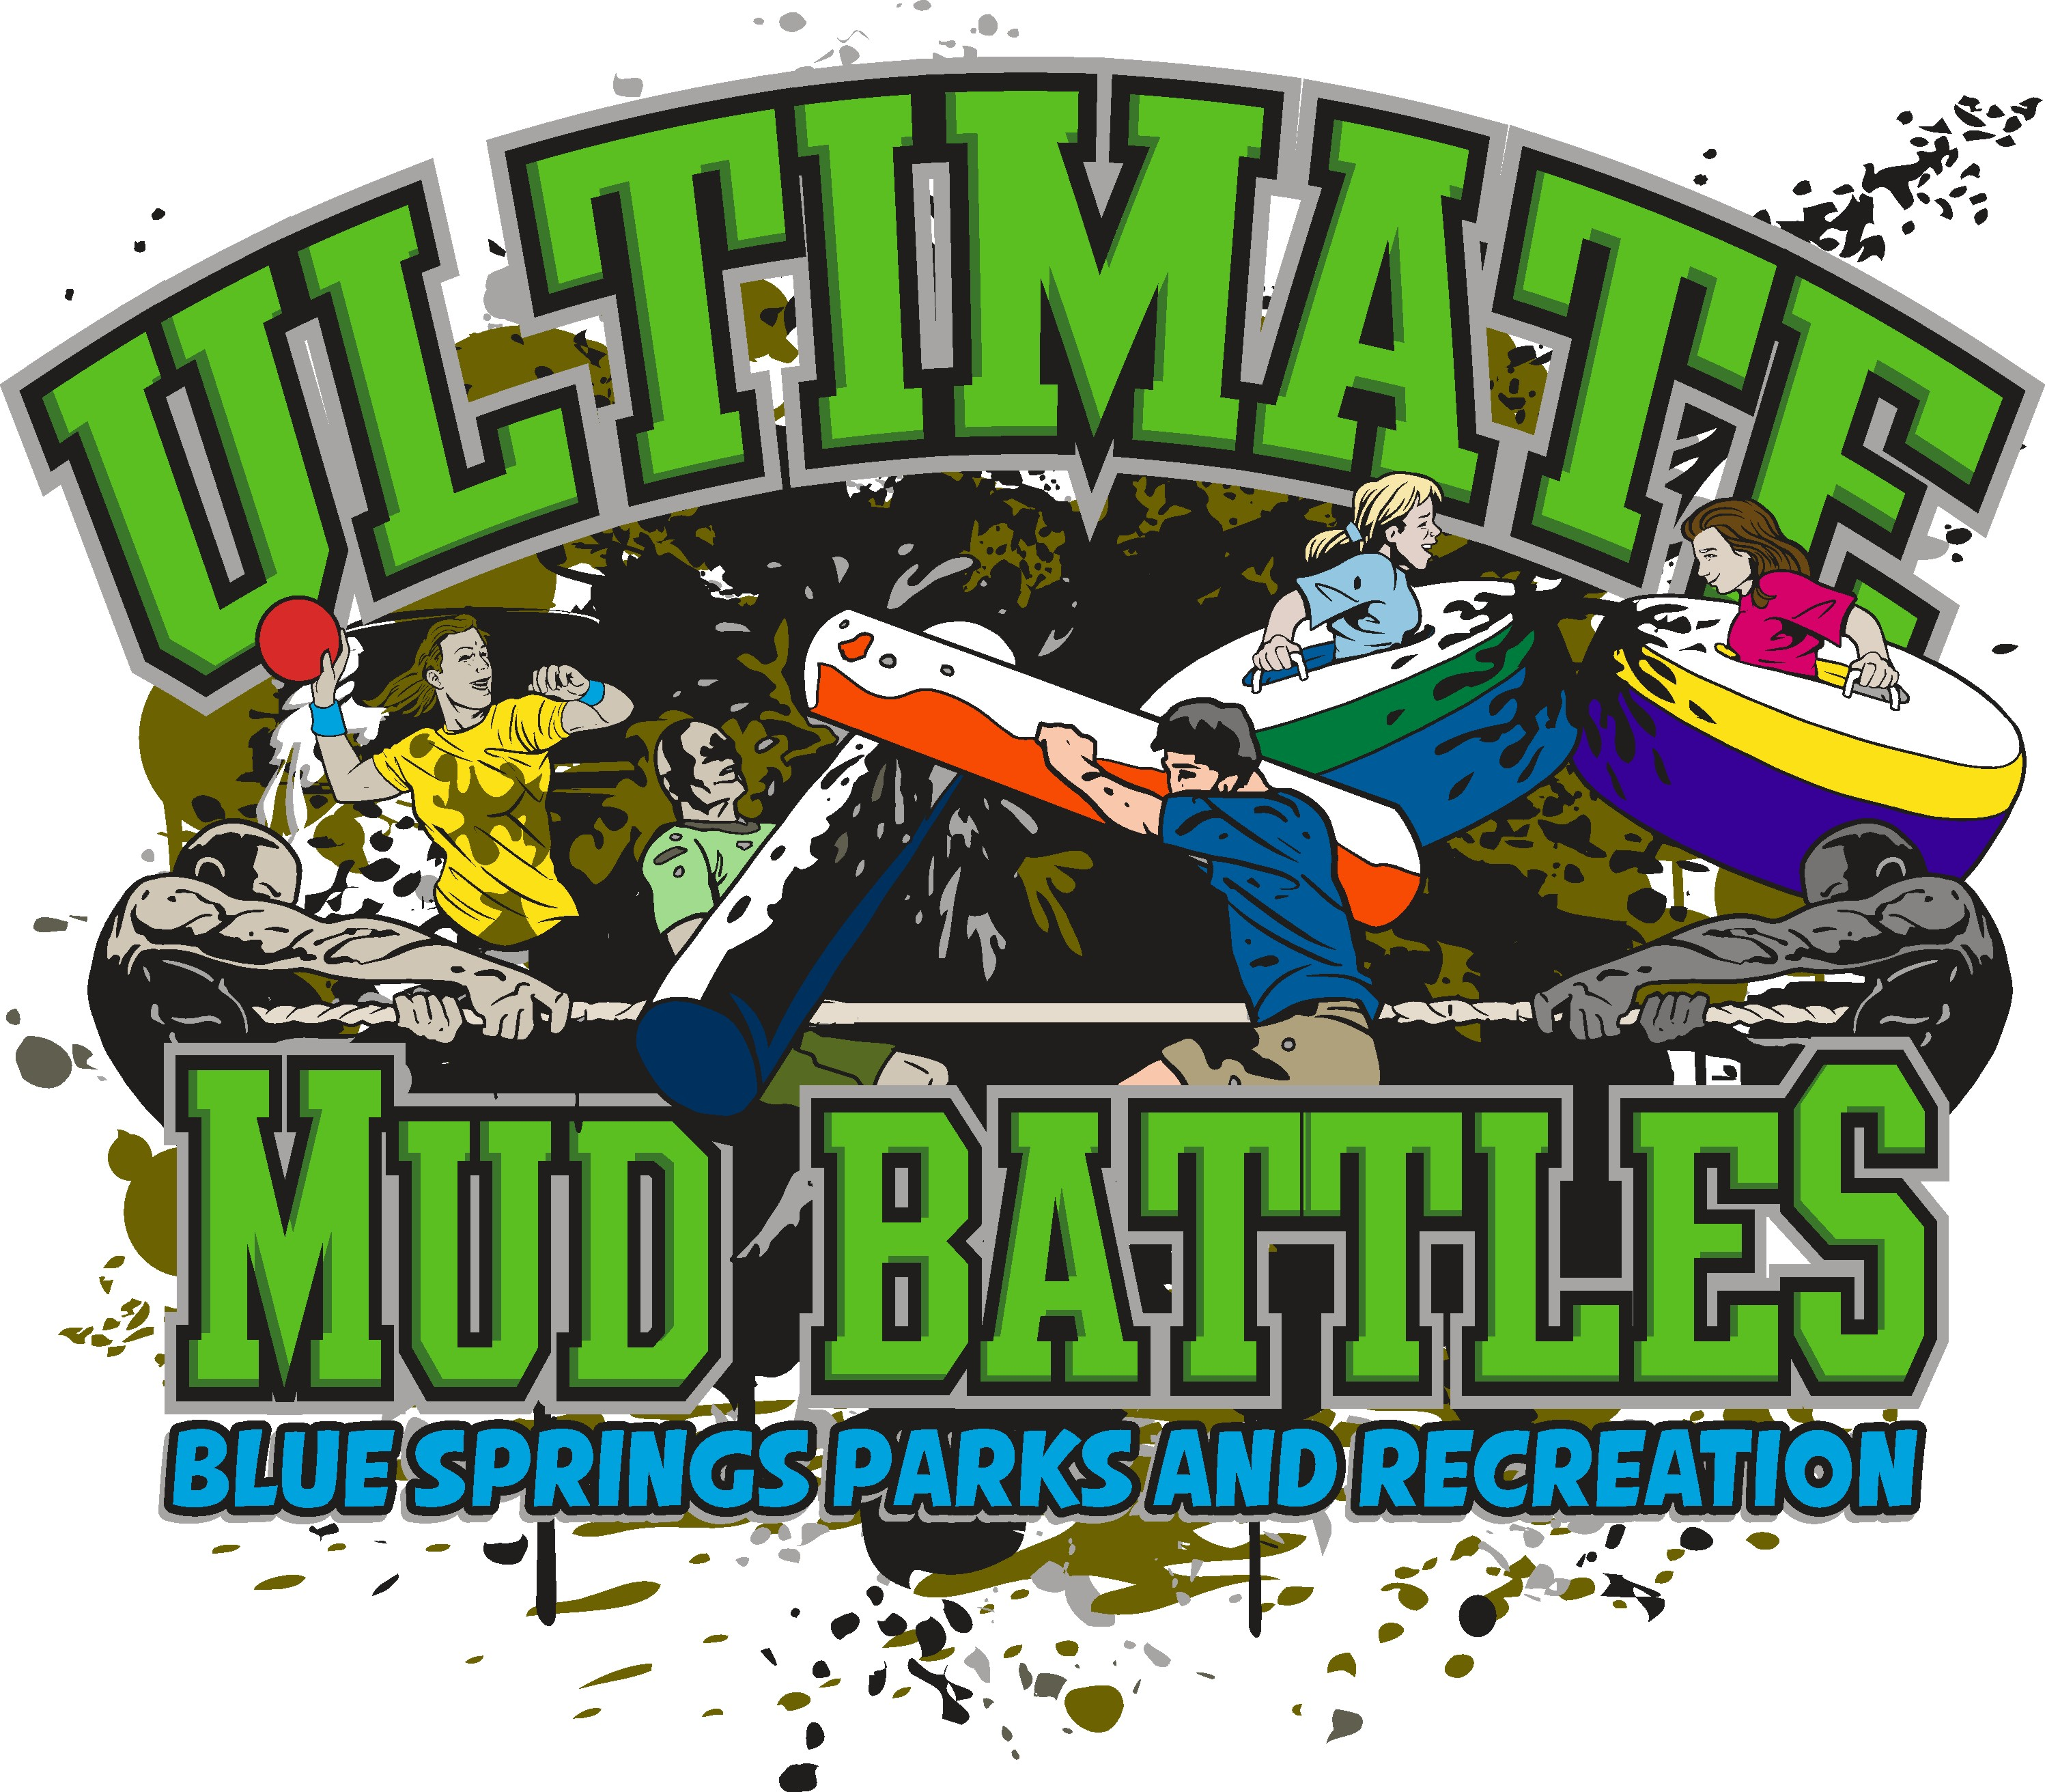 Mud Battles logo